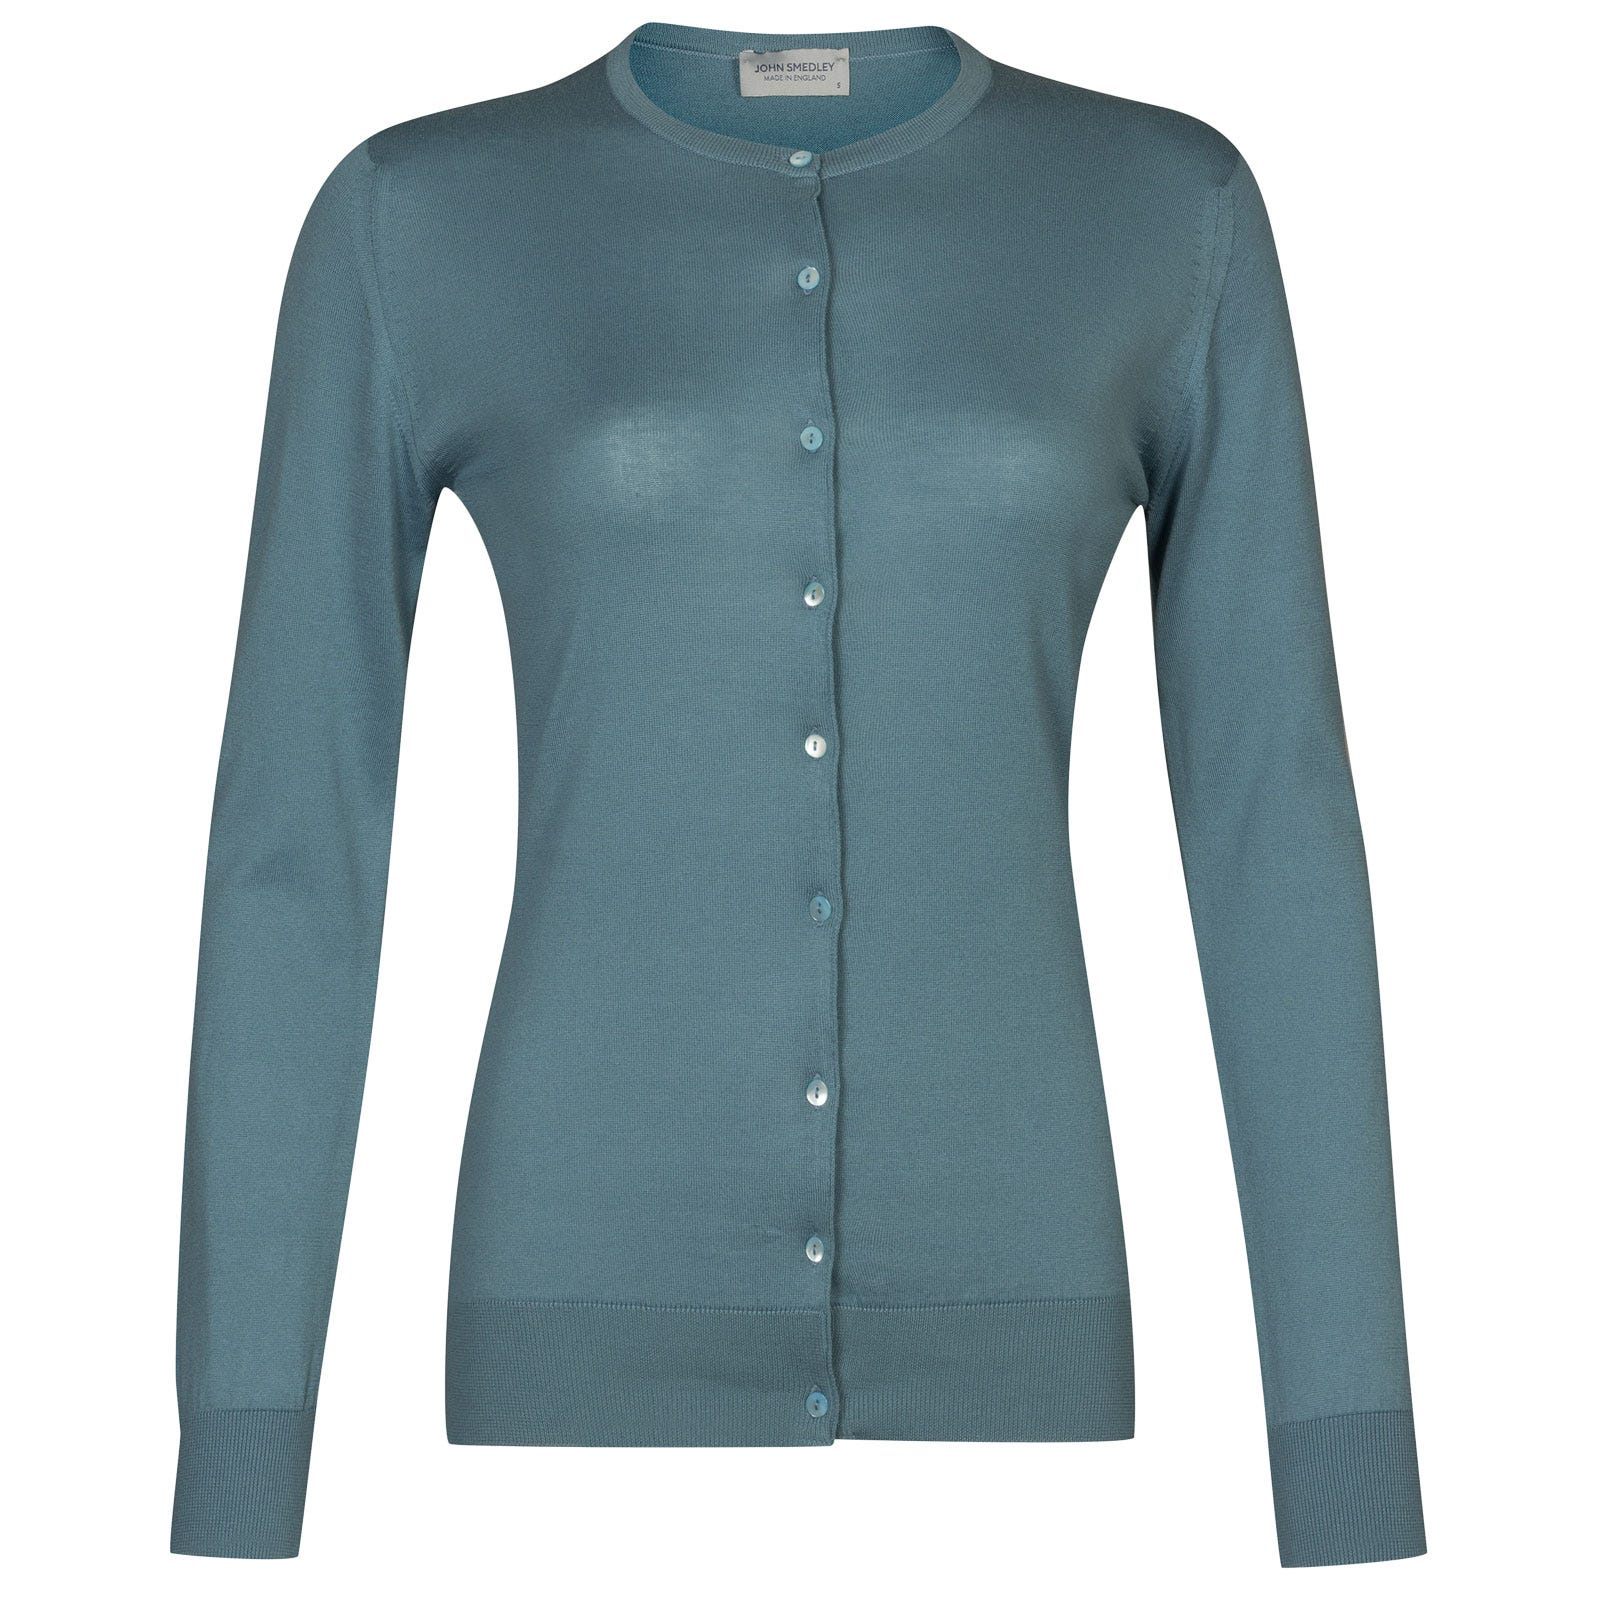 John Smedley Islington Sea Island Cotton Cardigan in Summit Blue-S